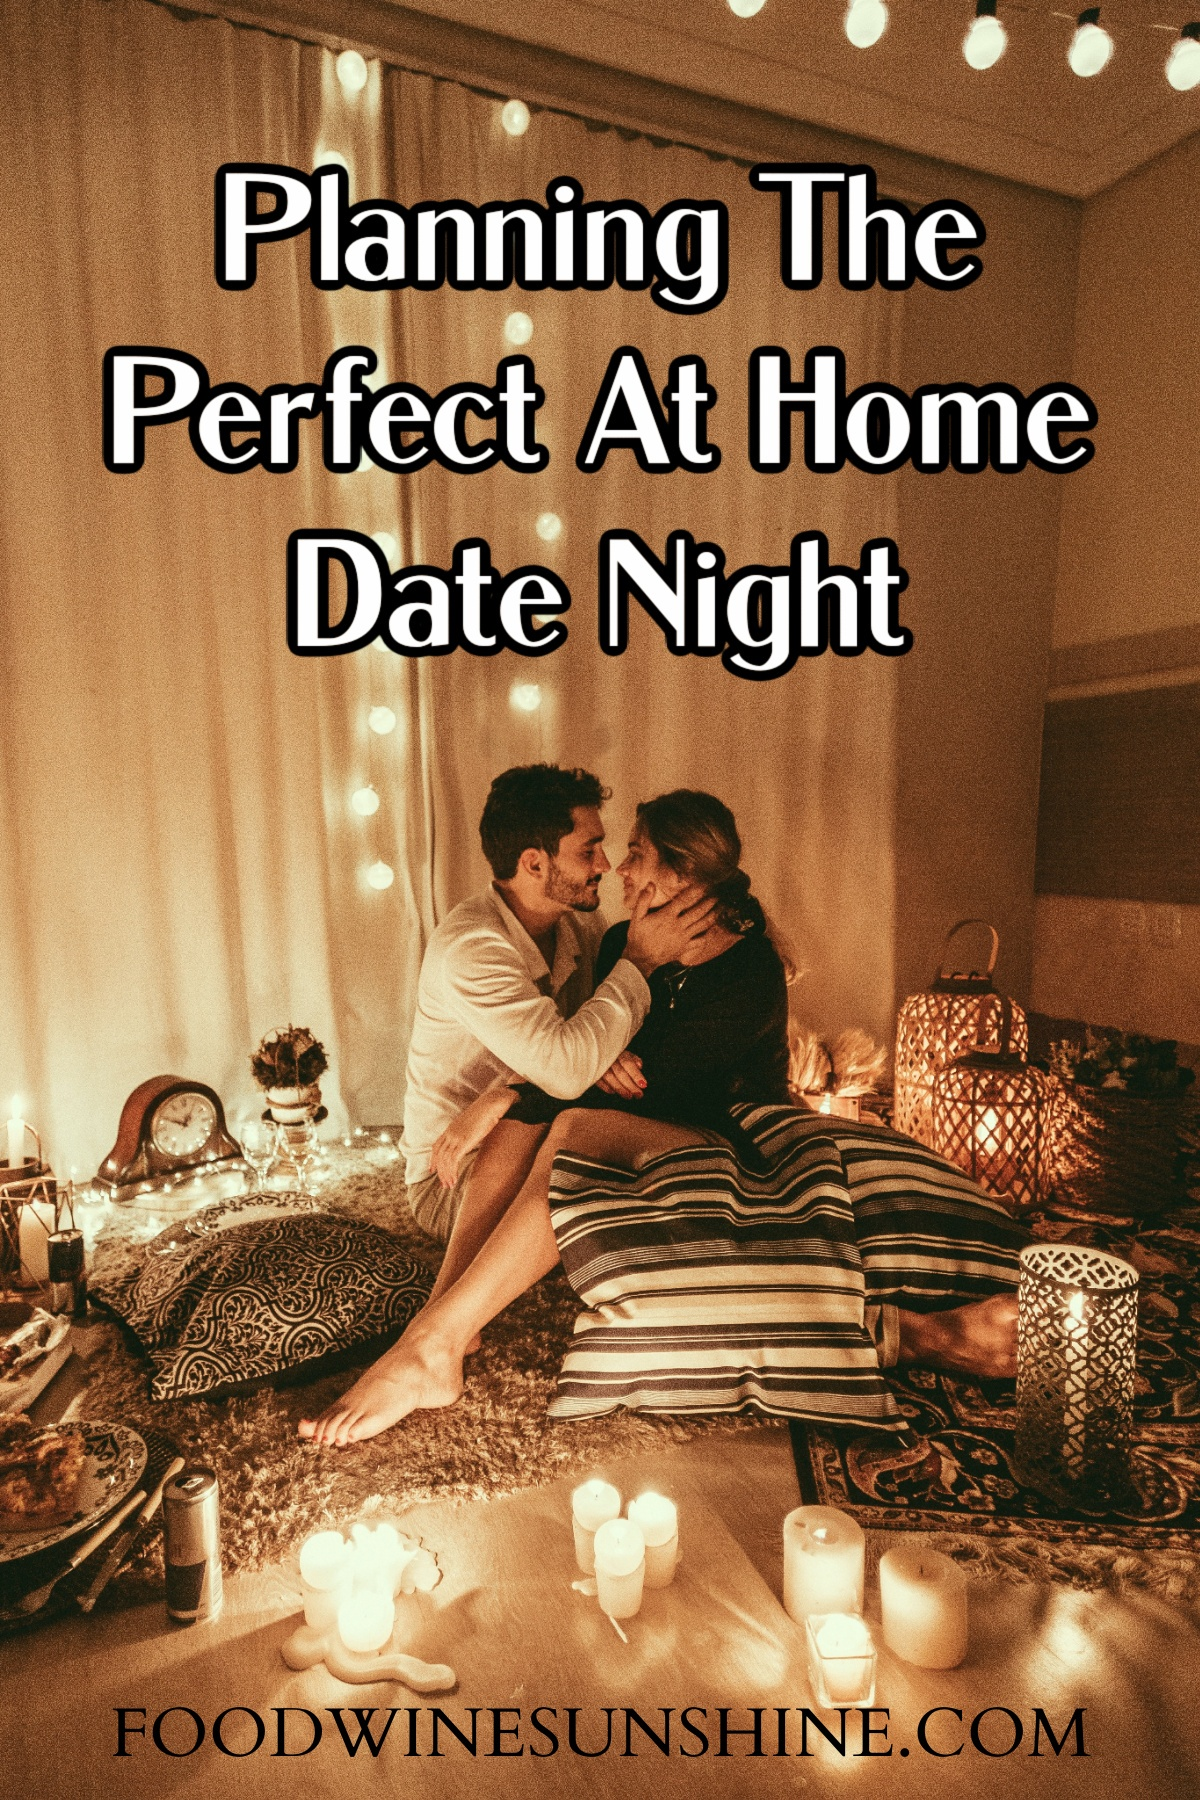 Planning The Perfect At Home Date Night